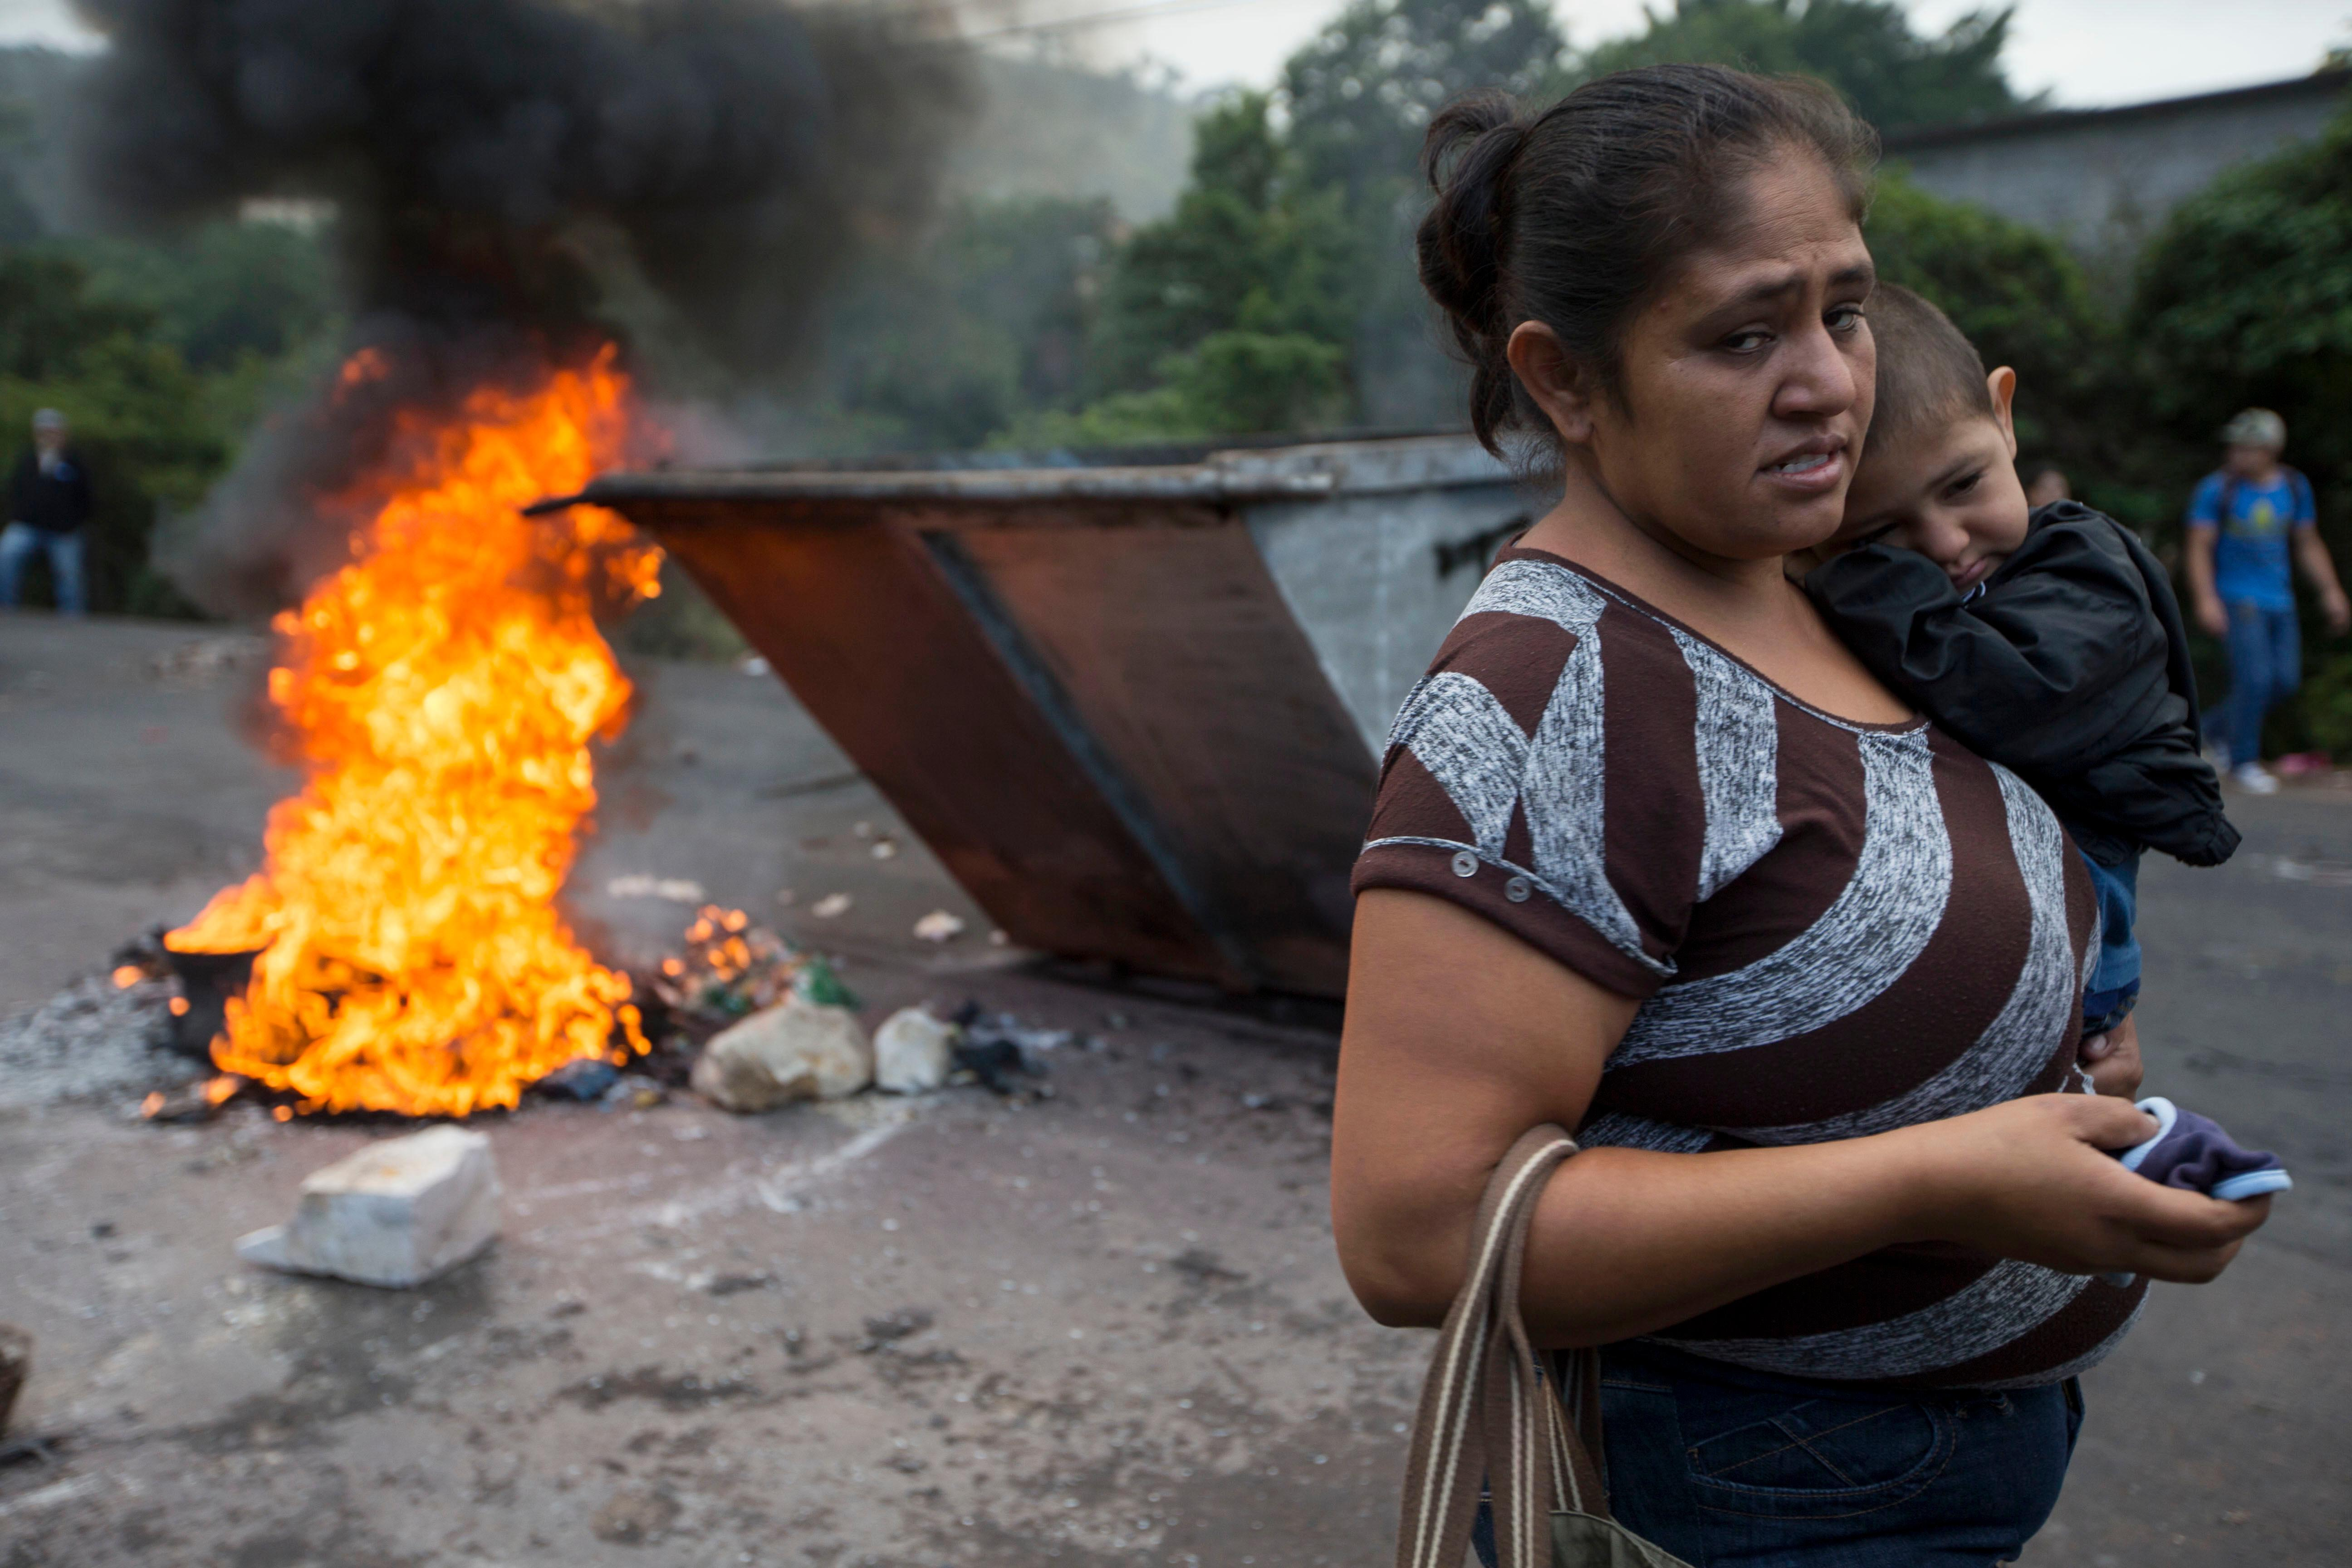 A woman, carrying a child, walks past a burning barricade erected by anti-government demonstrators blocking the road to Valle de los Angeles, on the outskirts of Tegucigalpa, Honduras, Thursday, Dec. 7, 2017. The government has lifted the curfew it imposed last week for nine of the country's 18 provinces, but left it in place for the two biggest cities, Tegucigalpa and San Pedro Sula, armed forces spokesman Jorge Cerrato said. (AP Photo/Moises Castillo)